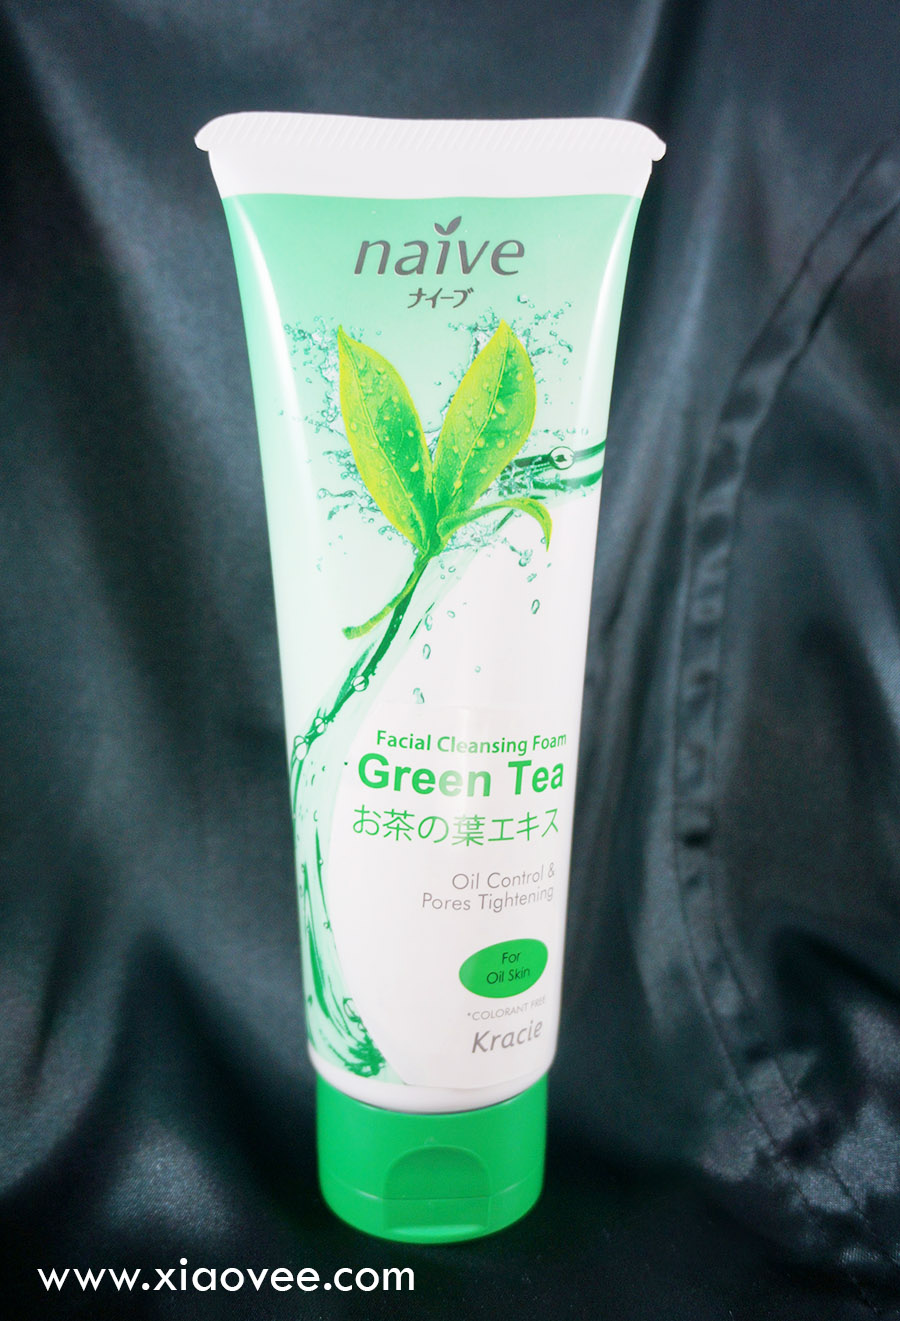 Naive cleansing foam